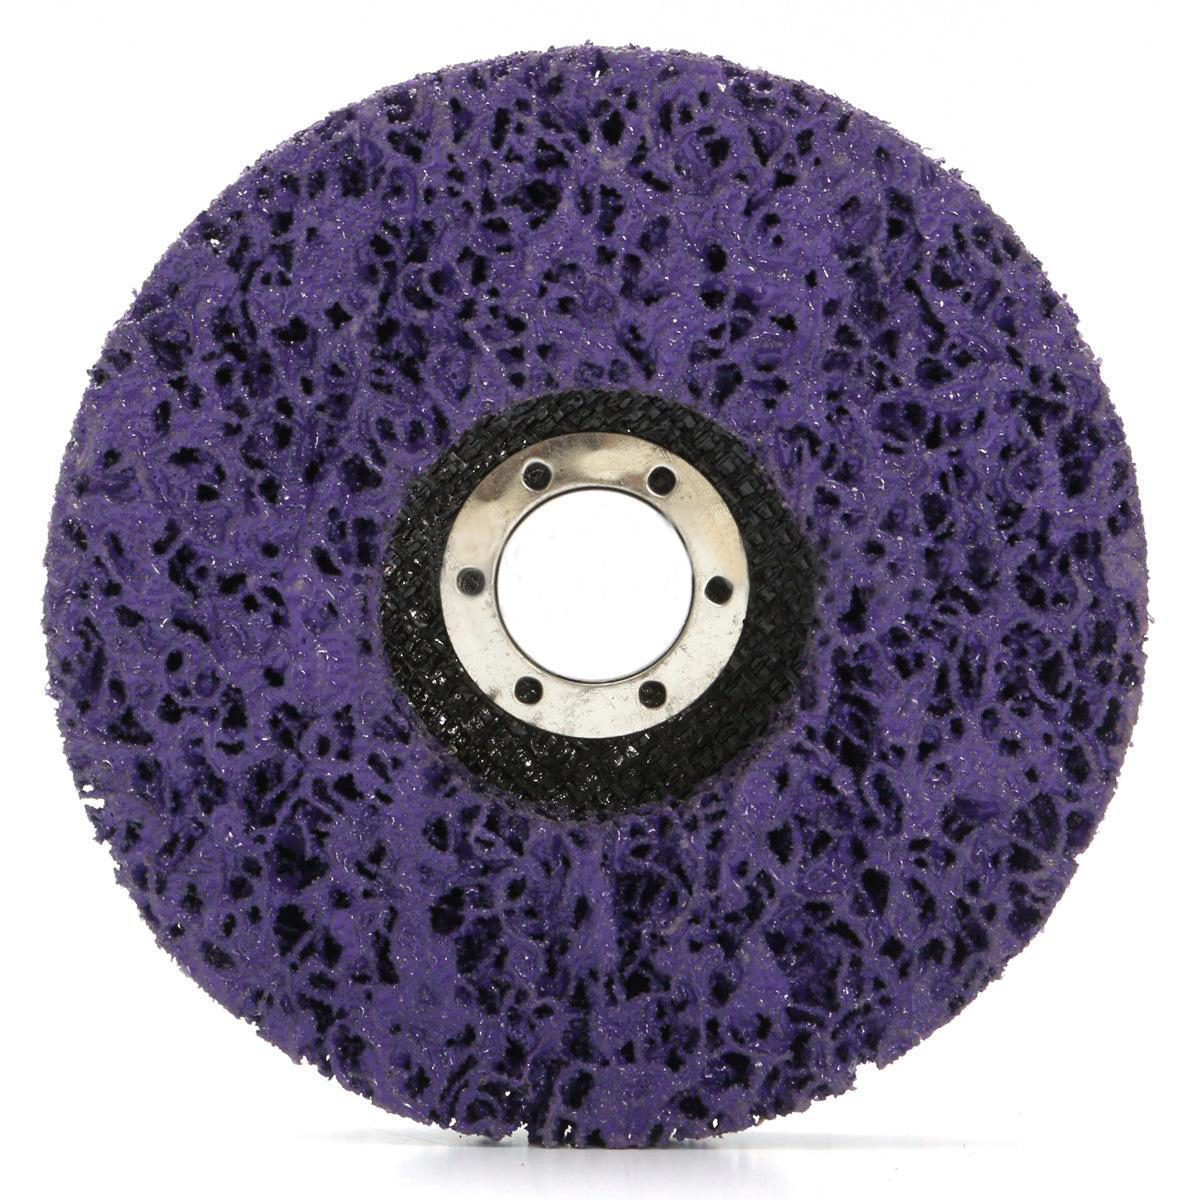 2pcs 125mm Clean Grinding Wheels Paint Rust Removal Poly Strip Disc 40 Grits For Angle Grinder